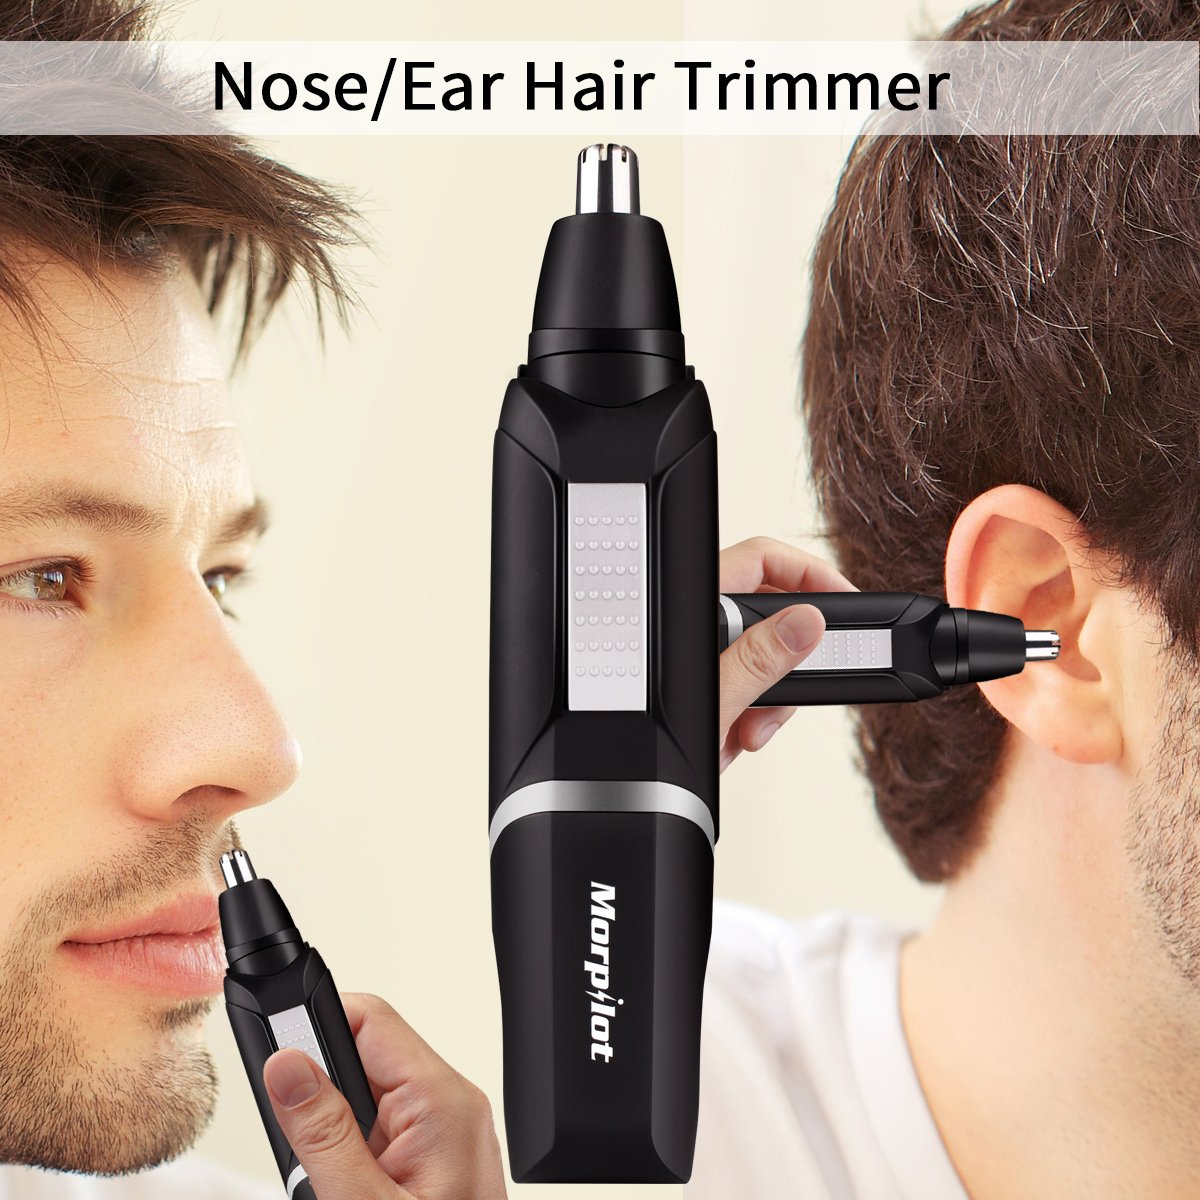 Morpilot Ear Nose Hair Trimmer for Men Professional Water Resistant Steel with Child Lock Switch LED Light Battery-Operated + Manicure Set (Black)